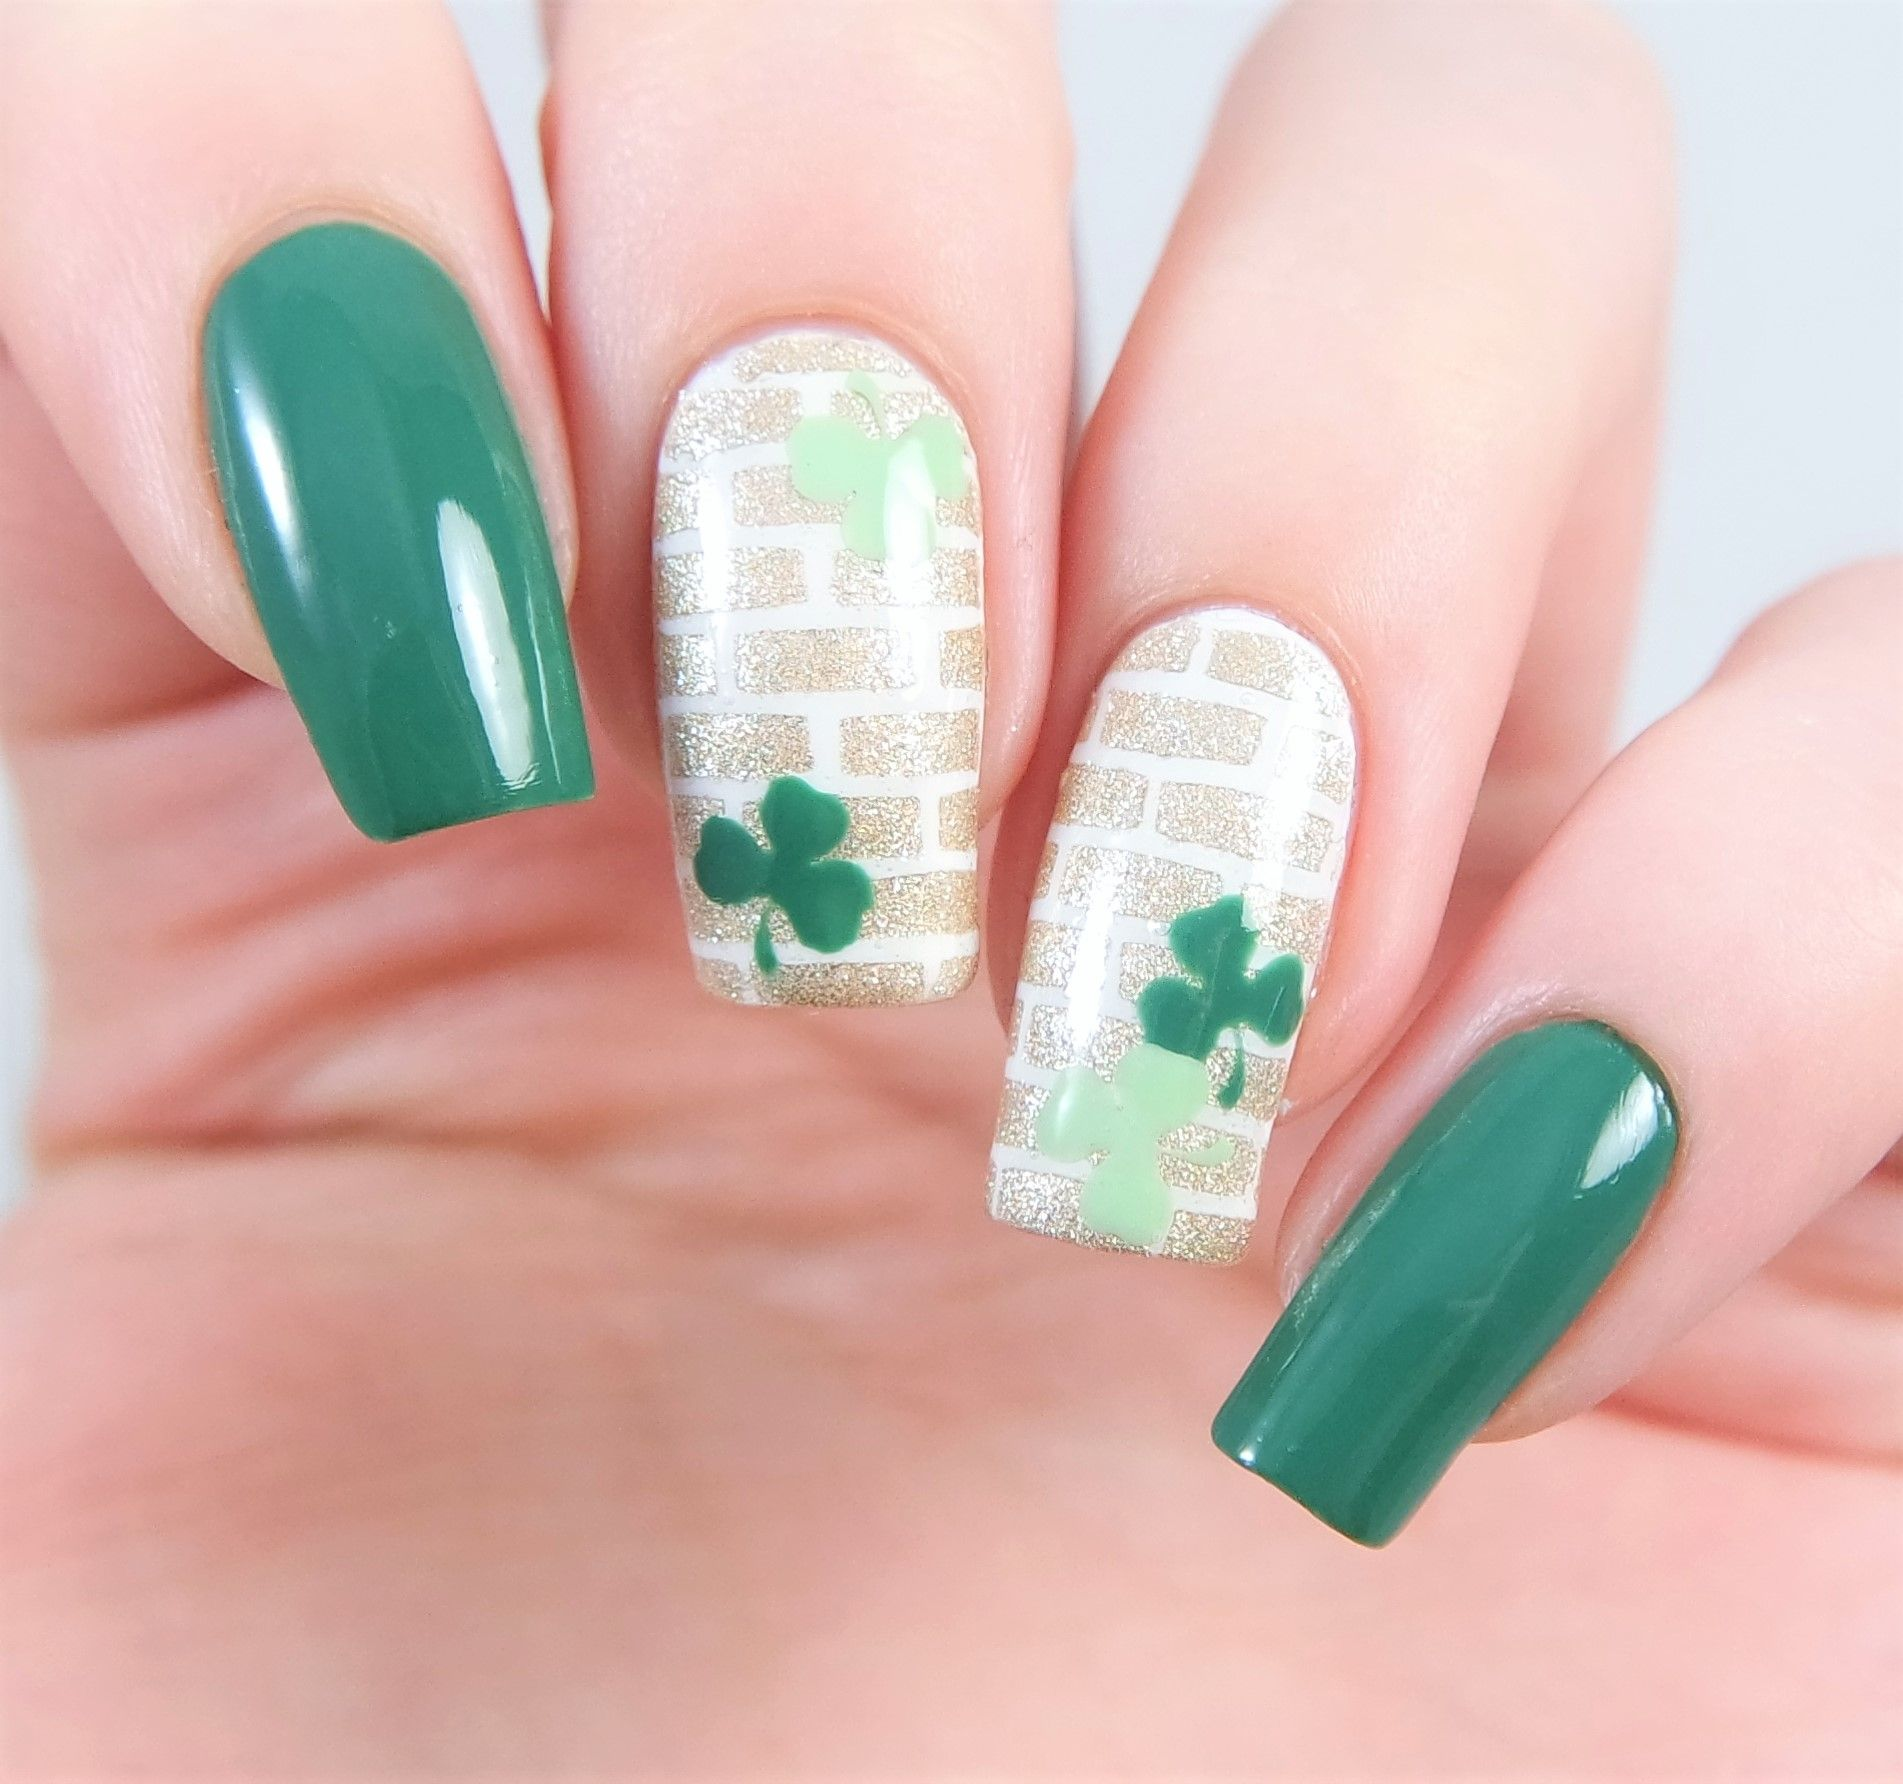 Clover Nail Decals | Nail stencils, Nail decals and Manicure